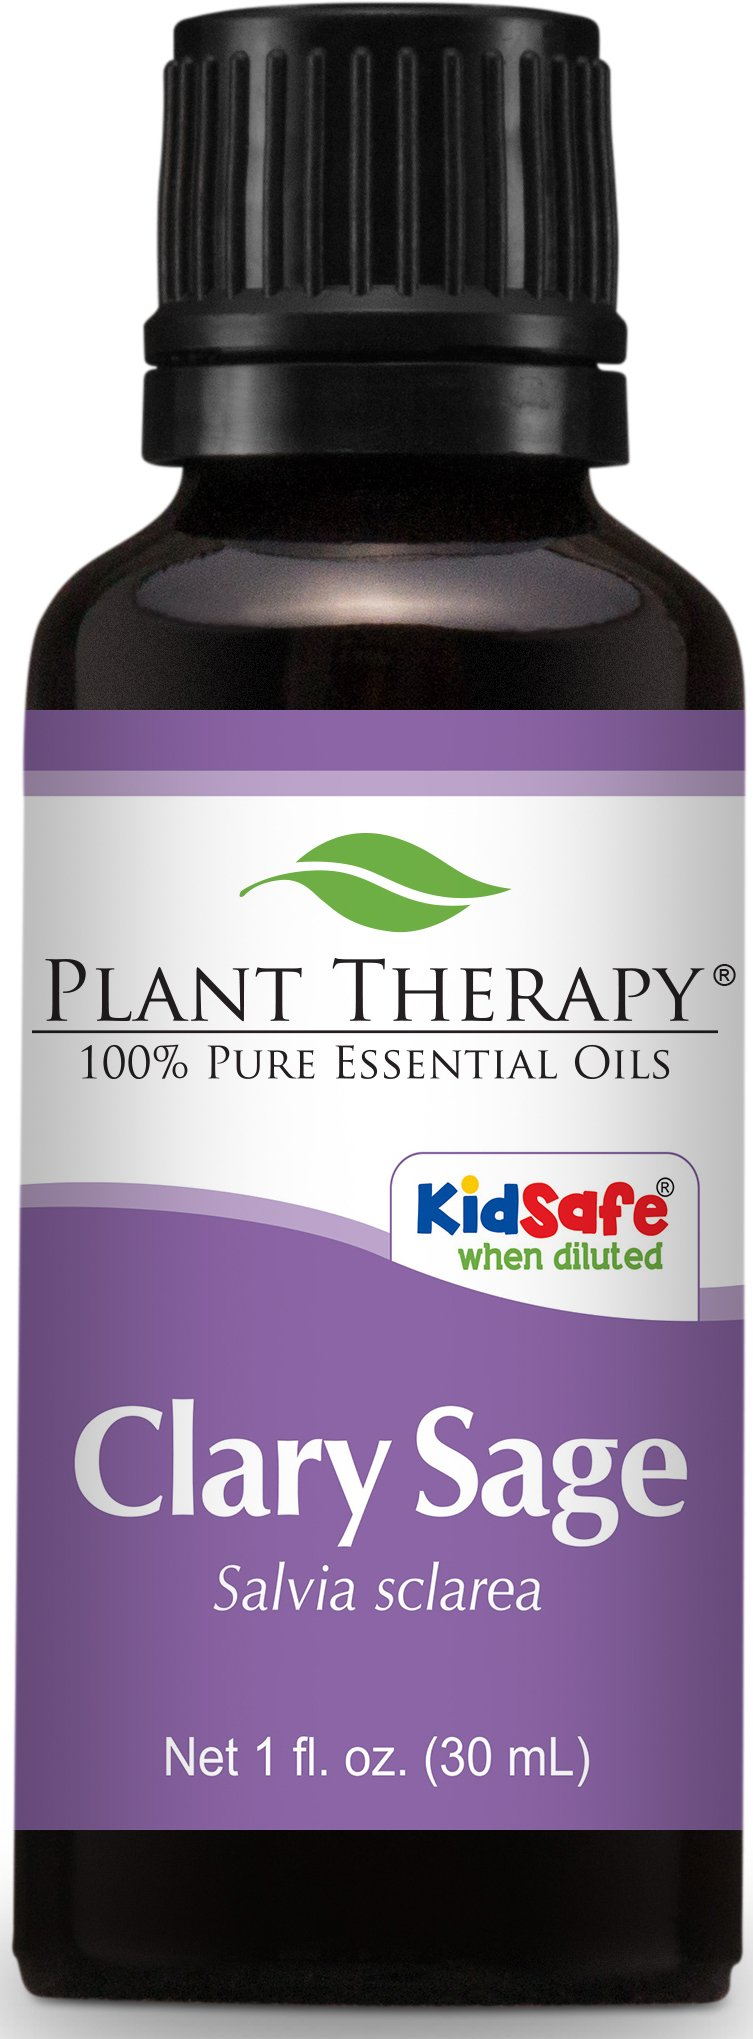 Plant Therapy Clary Sage Essential Oil. 100% Pure, Undiluted, Therapeutic Grade. 30 mL (1 Ounce).